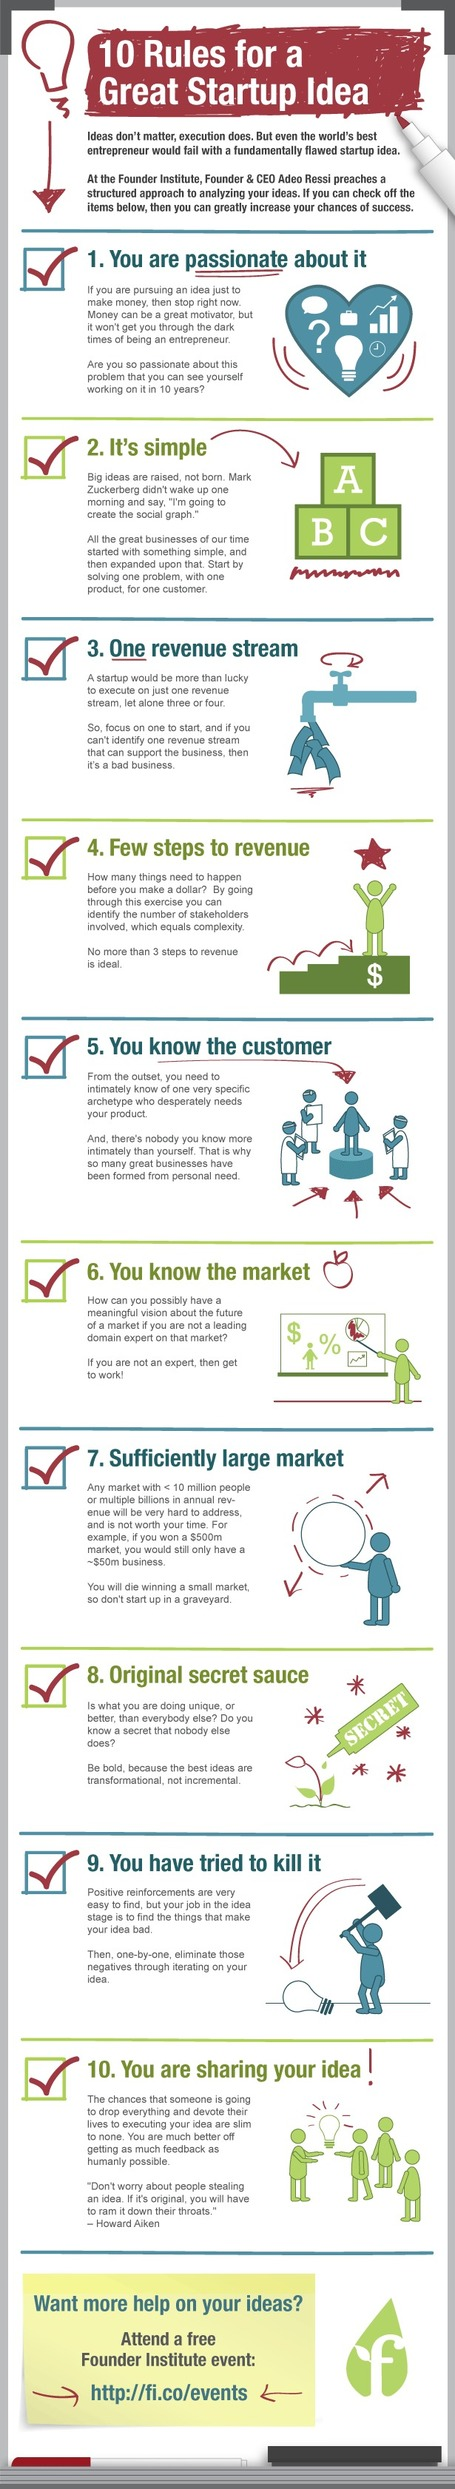 10 Rules to a Great Startup Idea #infographic | MarketingHits | Scoop.it